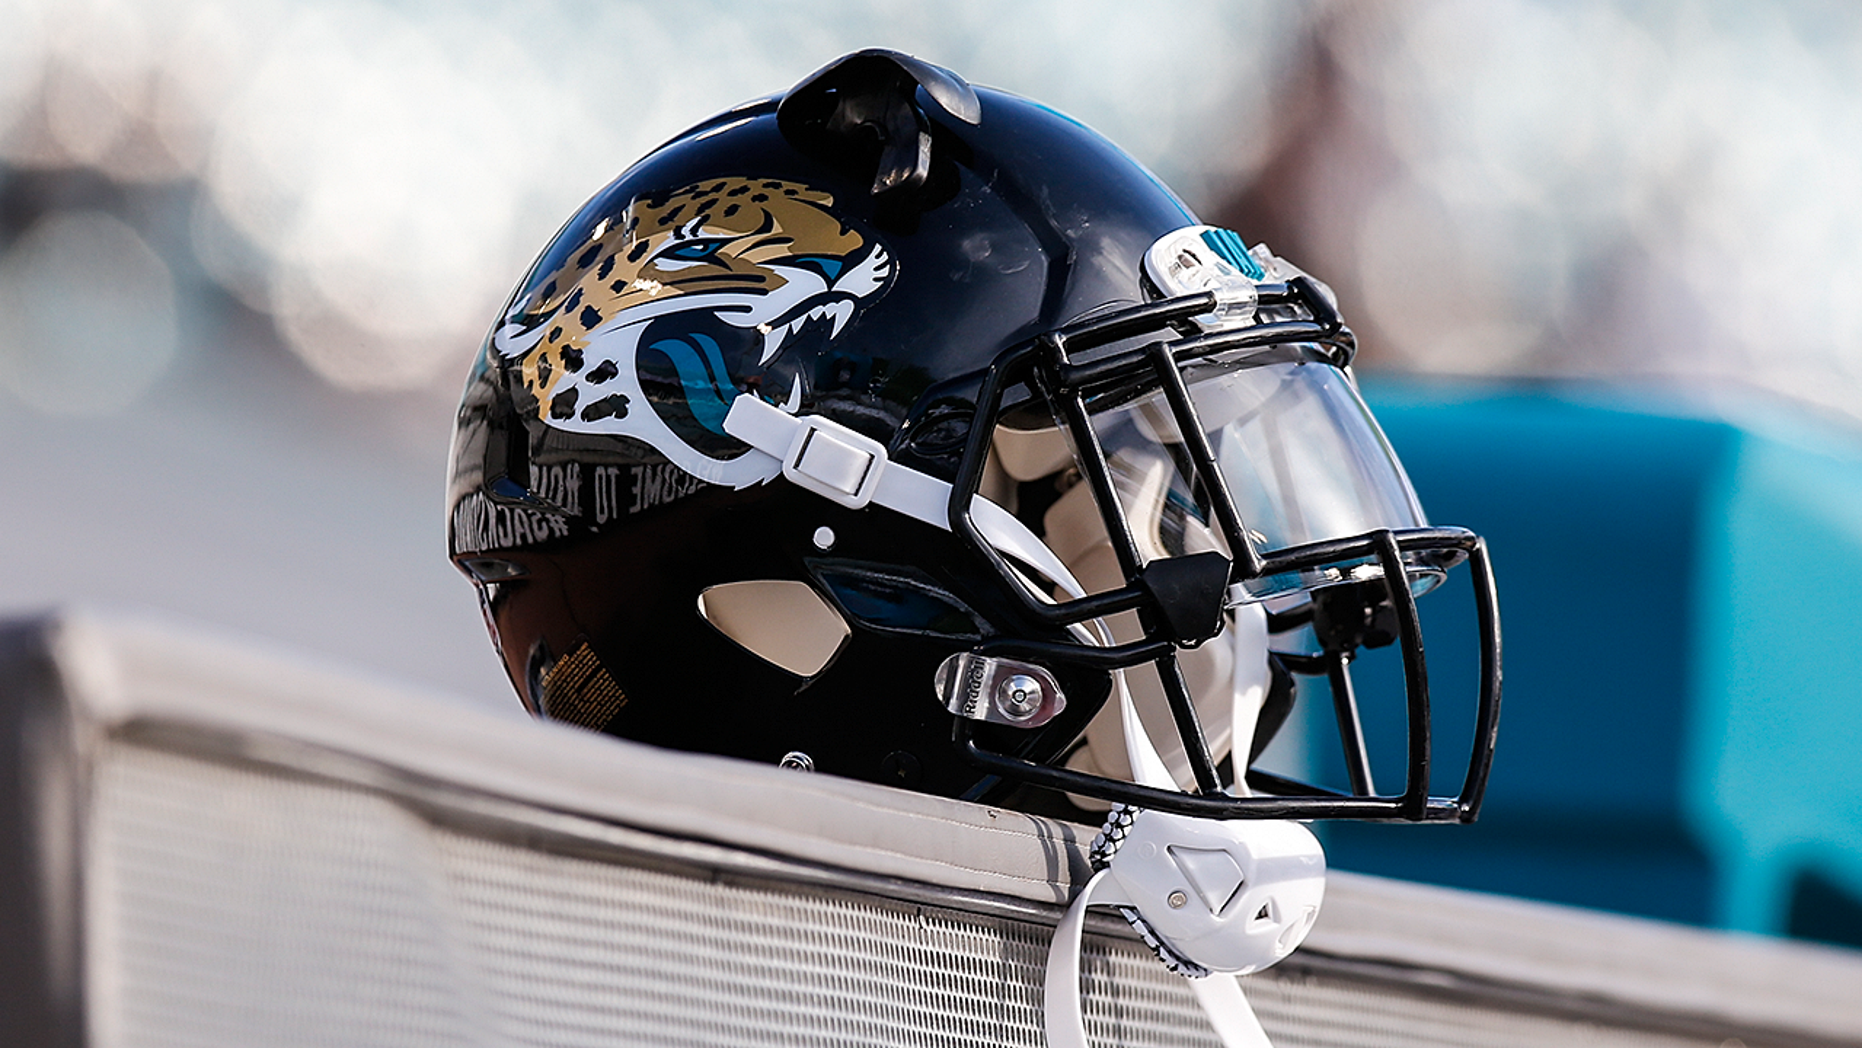 Four Jacksonville Jaguars players detained ahead of NFL game in London – Trending Stuff